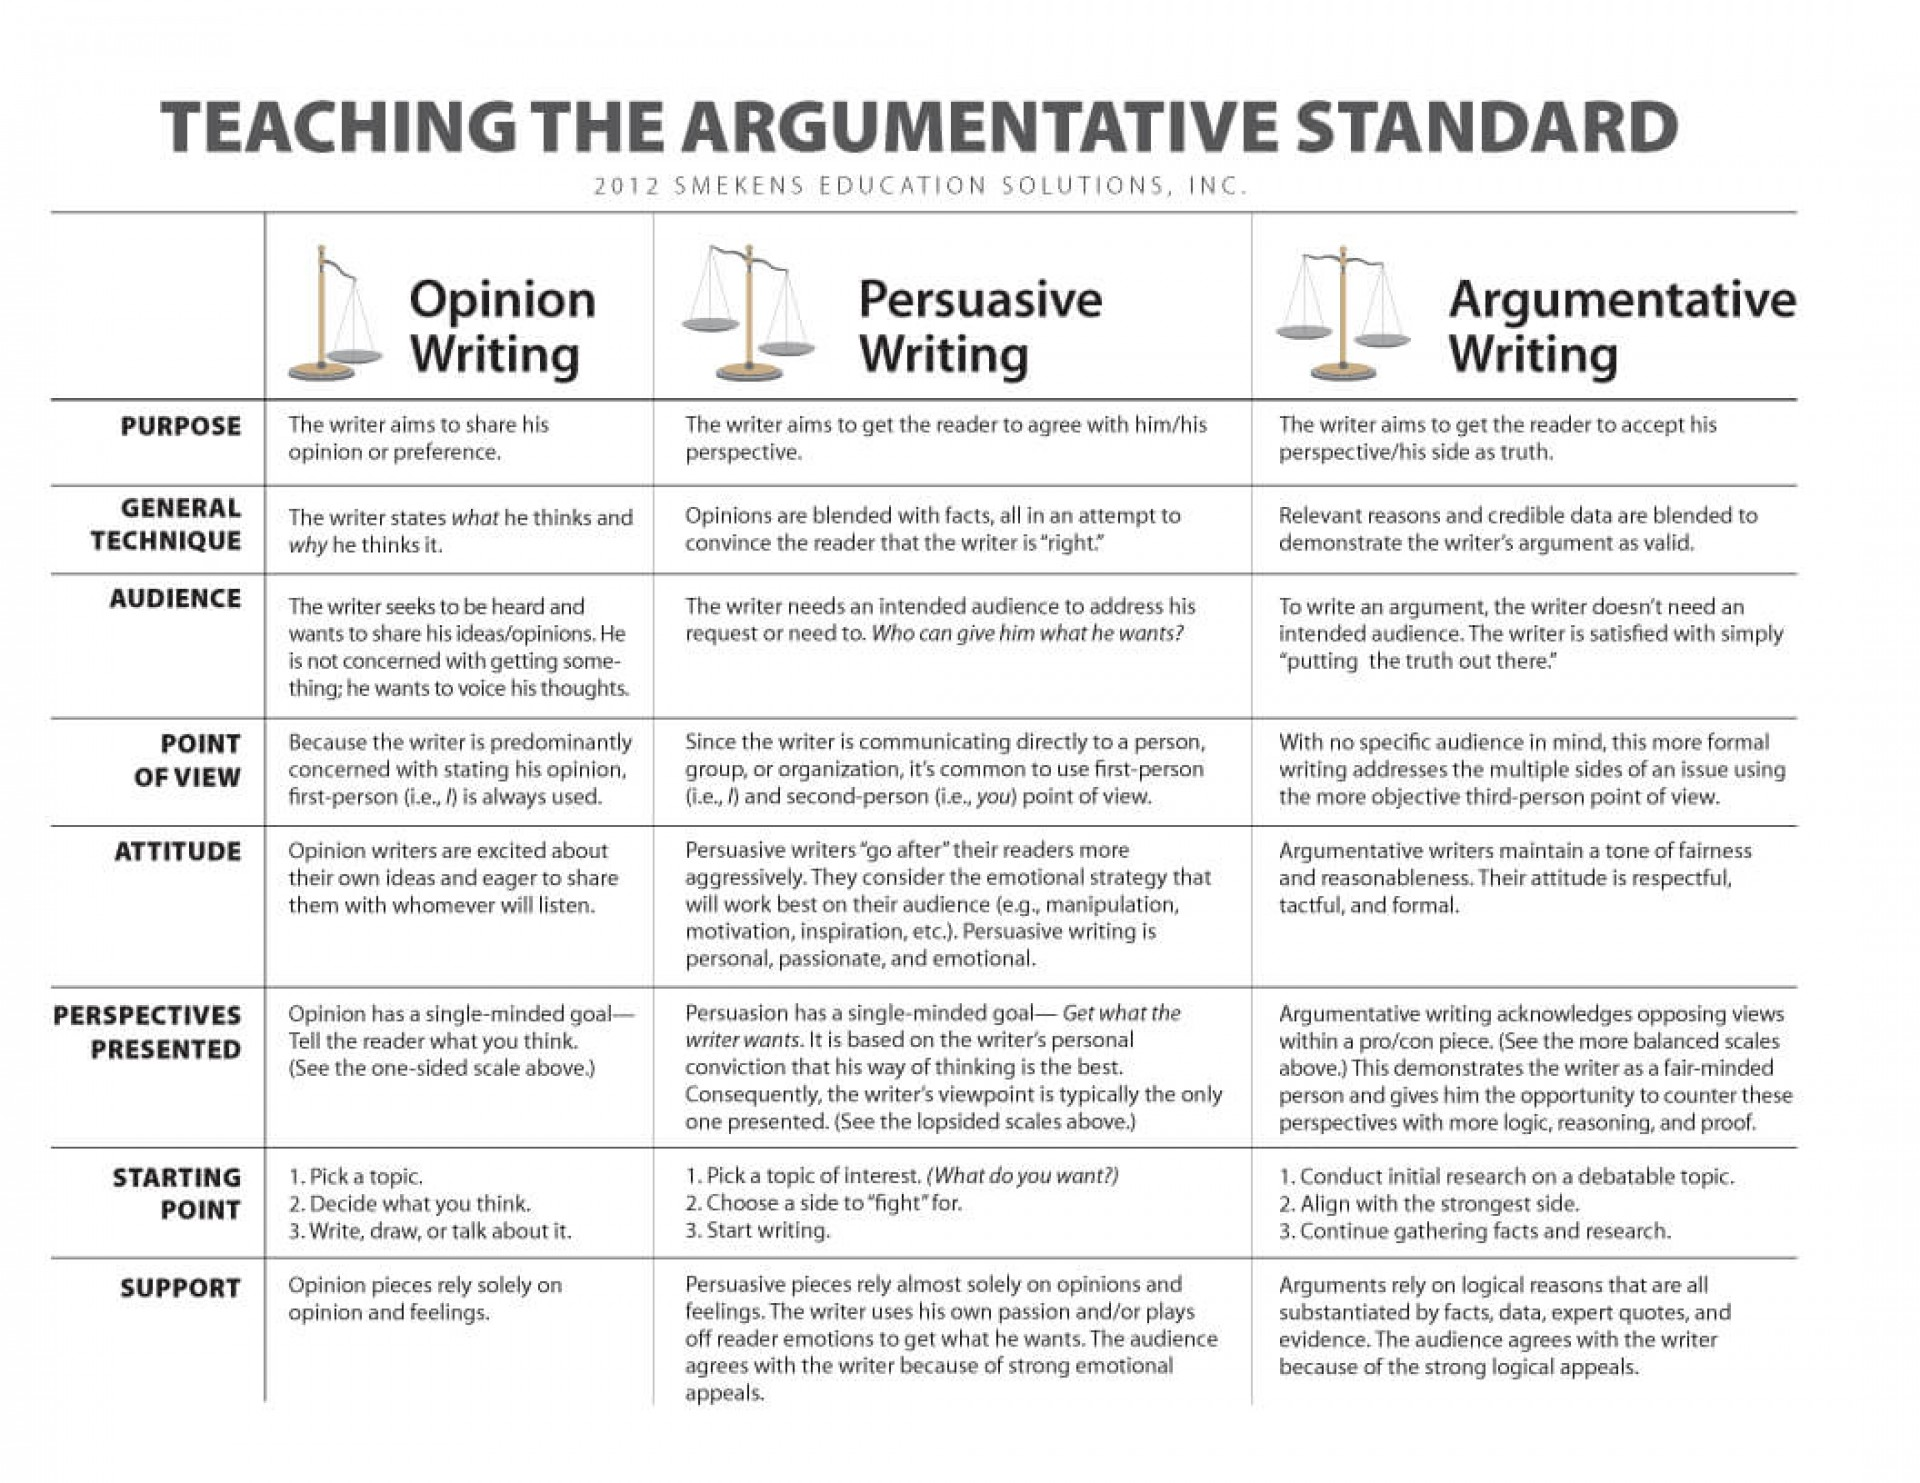 016 Writing An Argument Essay Teaching The Argumetative Standardo Outstanding Sample Argumentative Pdf Download Ppt Step By 1920